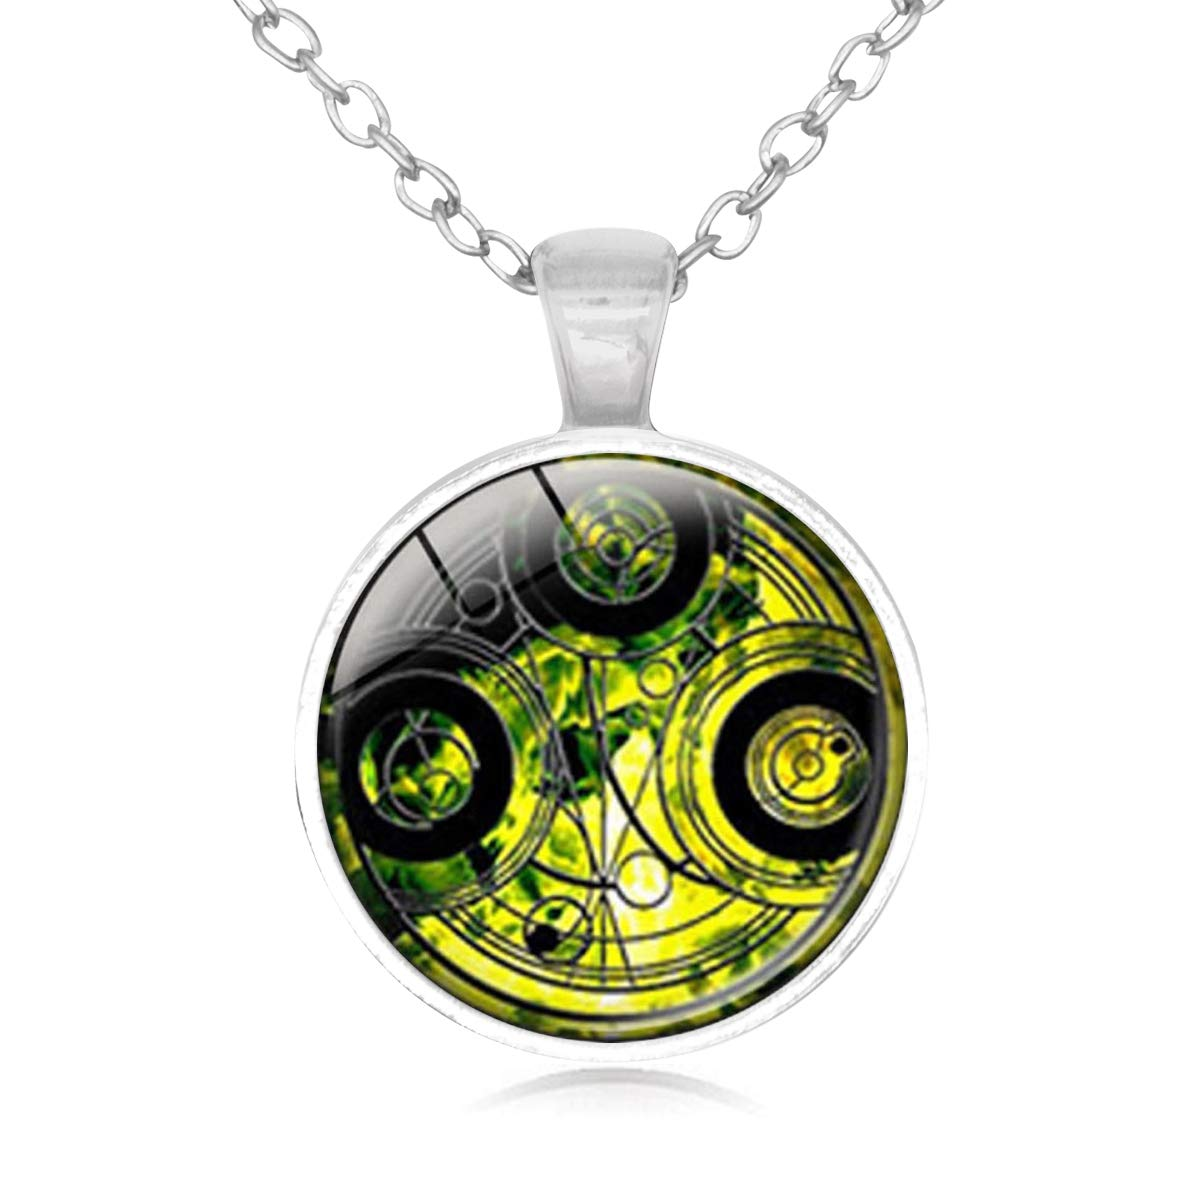 Family Decor Doctor Who Time Lord Language Pendant Necklace Cabochon Glass Vintage Bronze Chain Necklace Jewelry Handmade